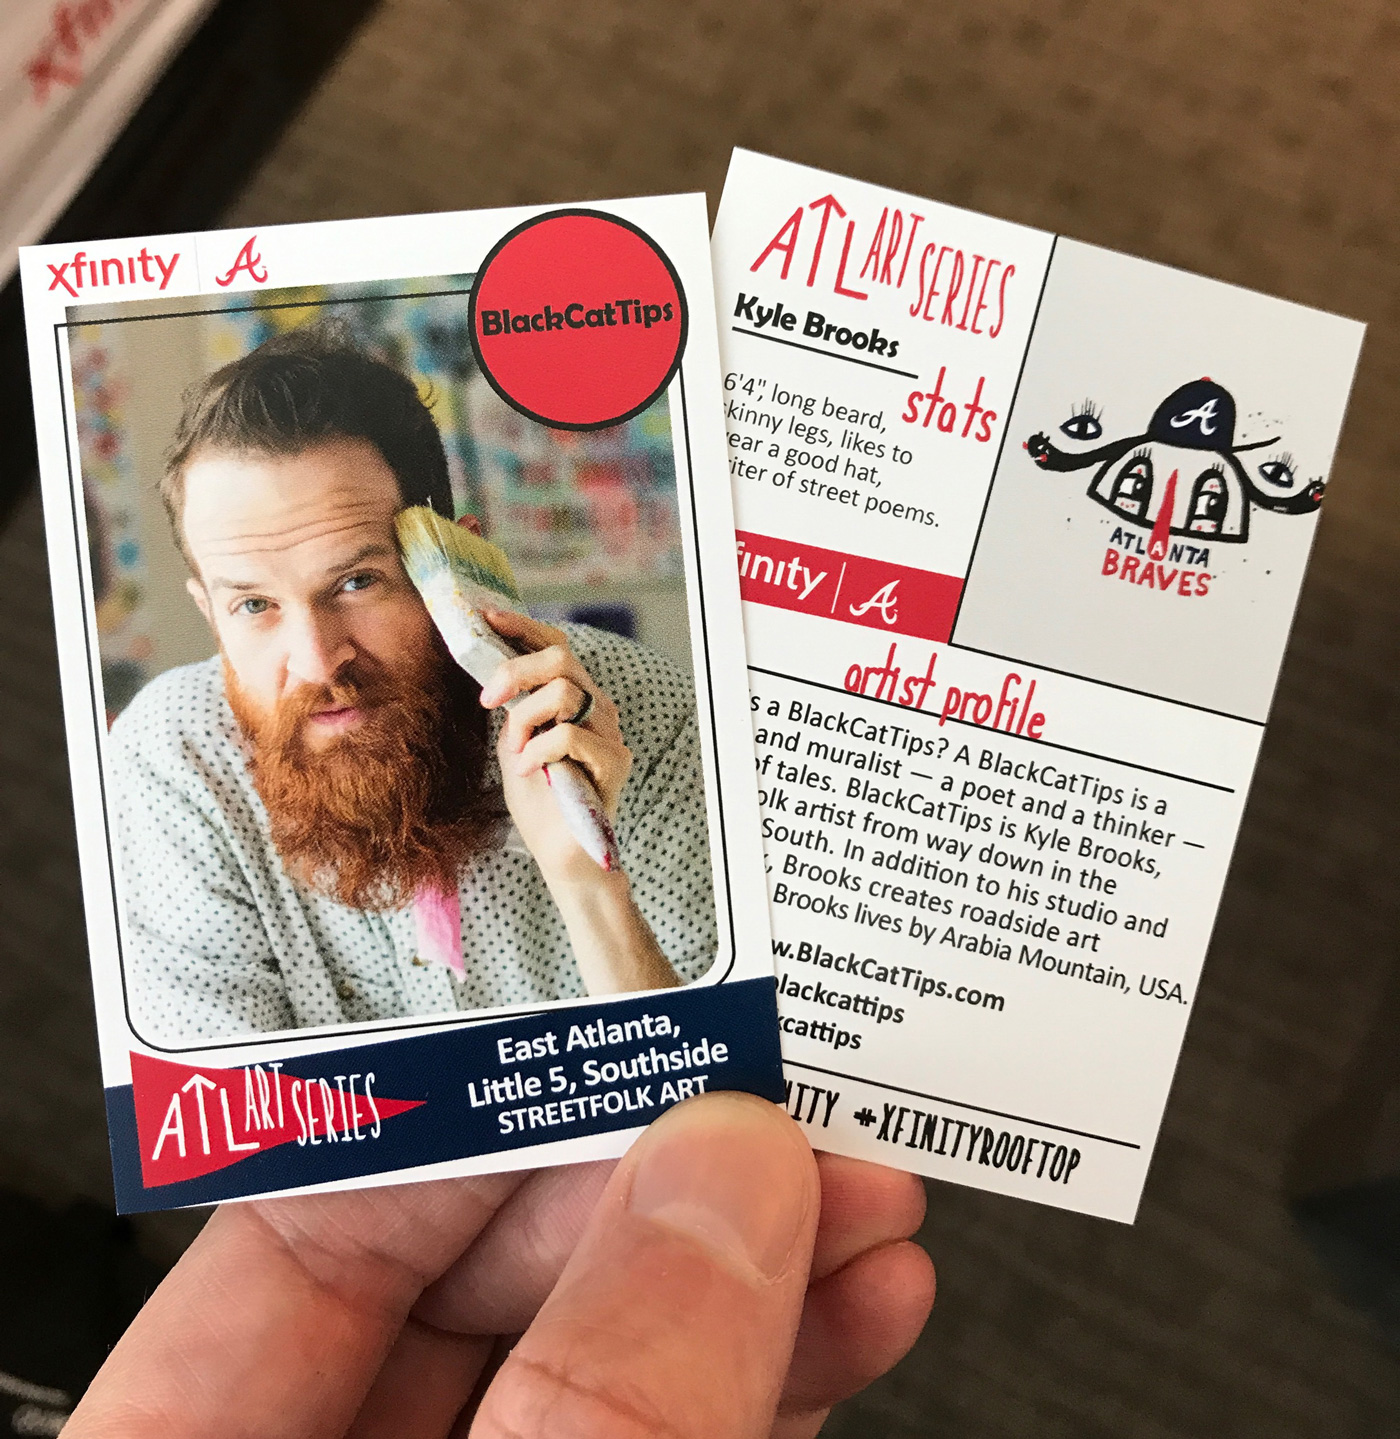 BlackCatTips-Atlanta-Braves-Xfinity-Rooftop-baseball-card